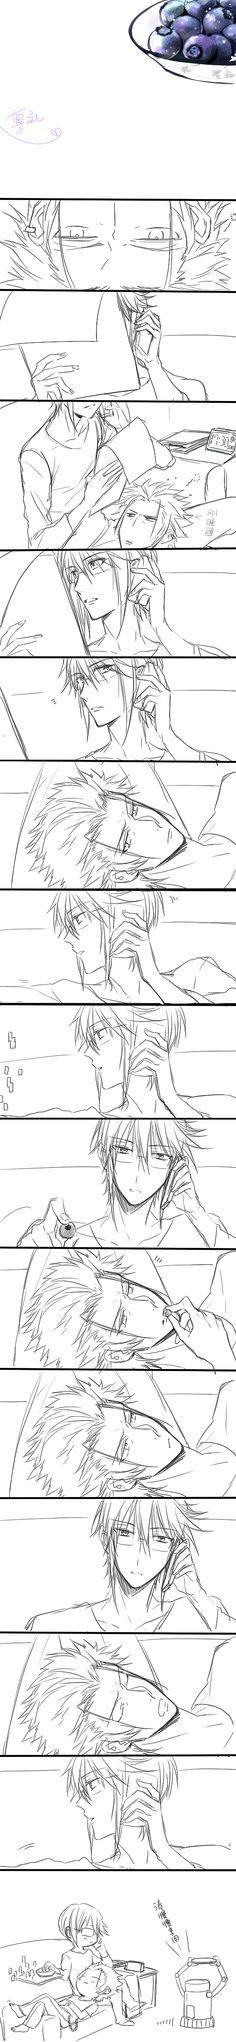 Mikoto x Munakata ............I need to stop shipping male characters all the time. <--- no my child continue to do that xD